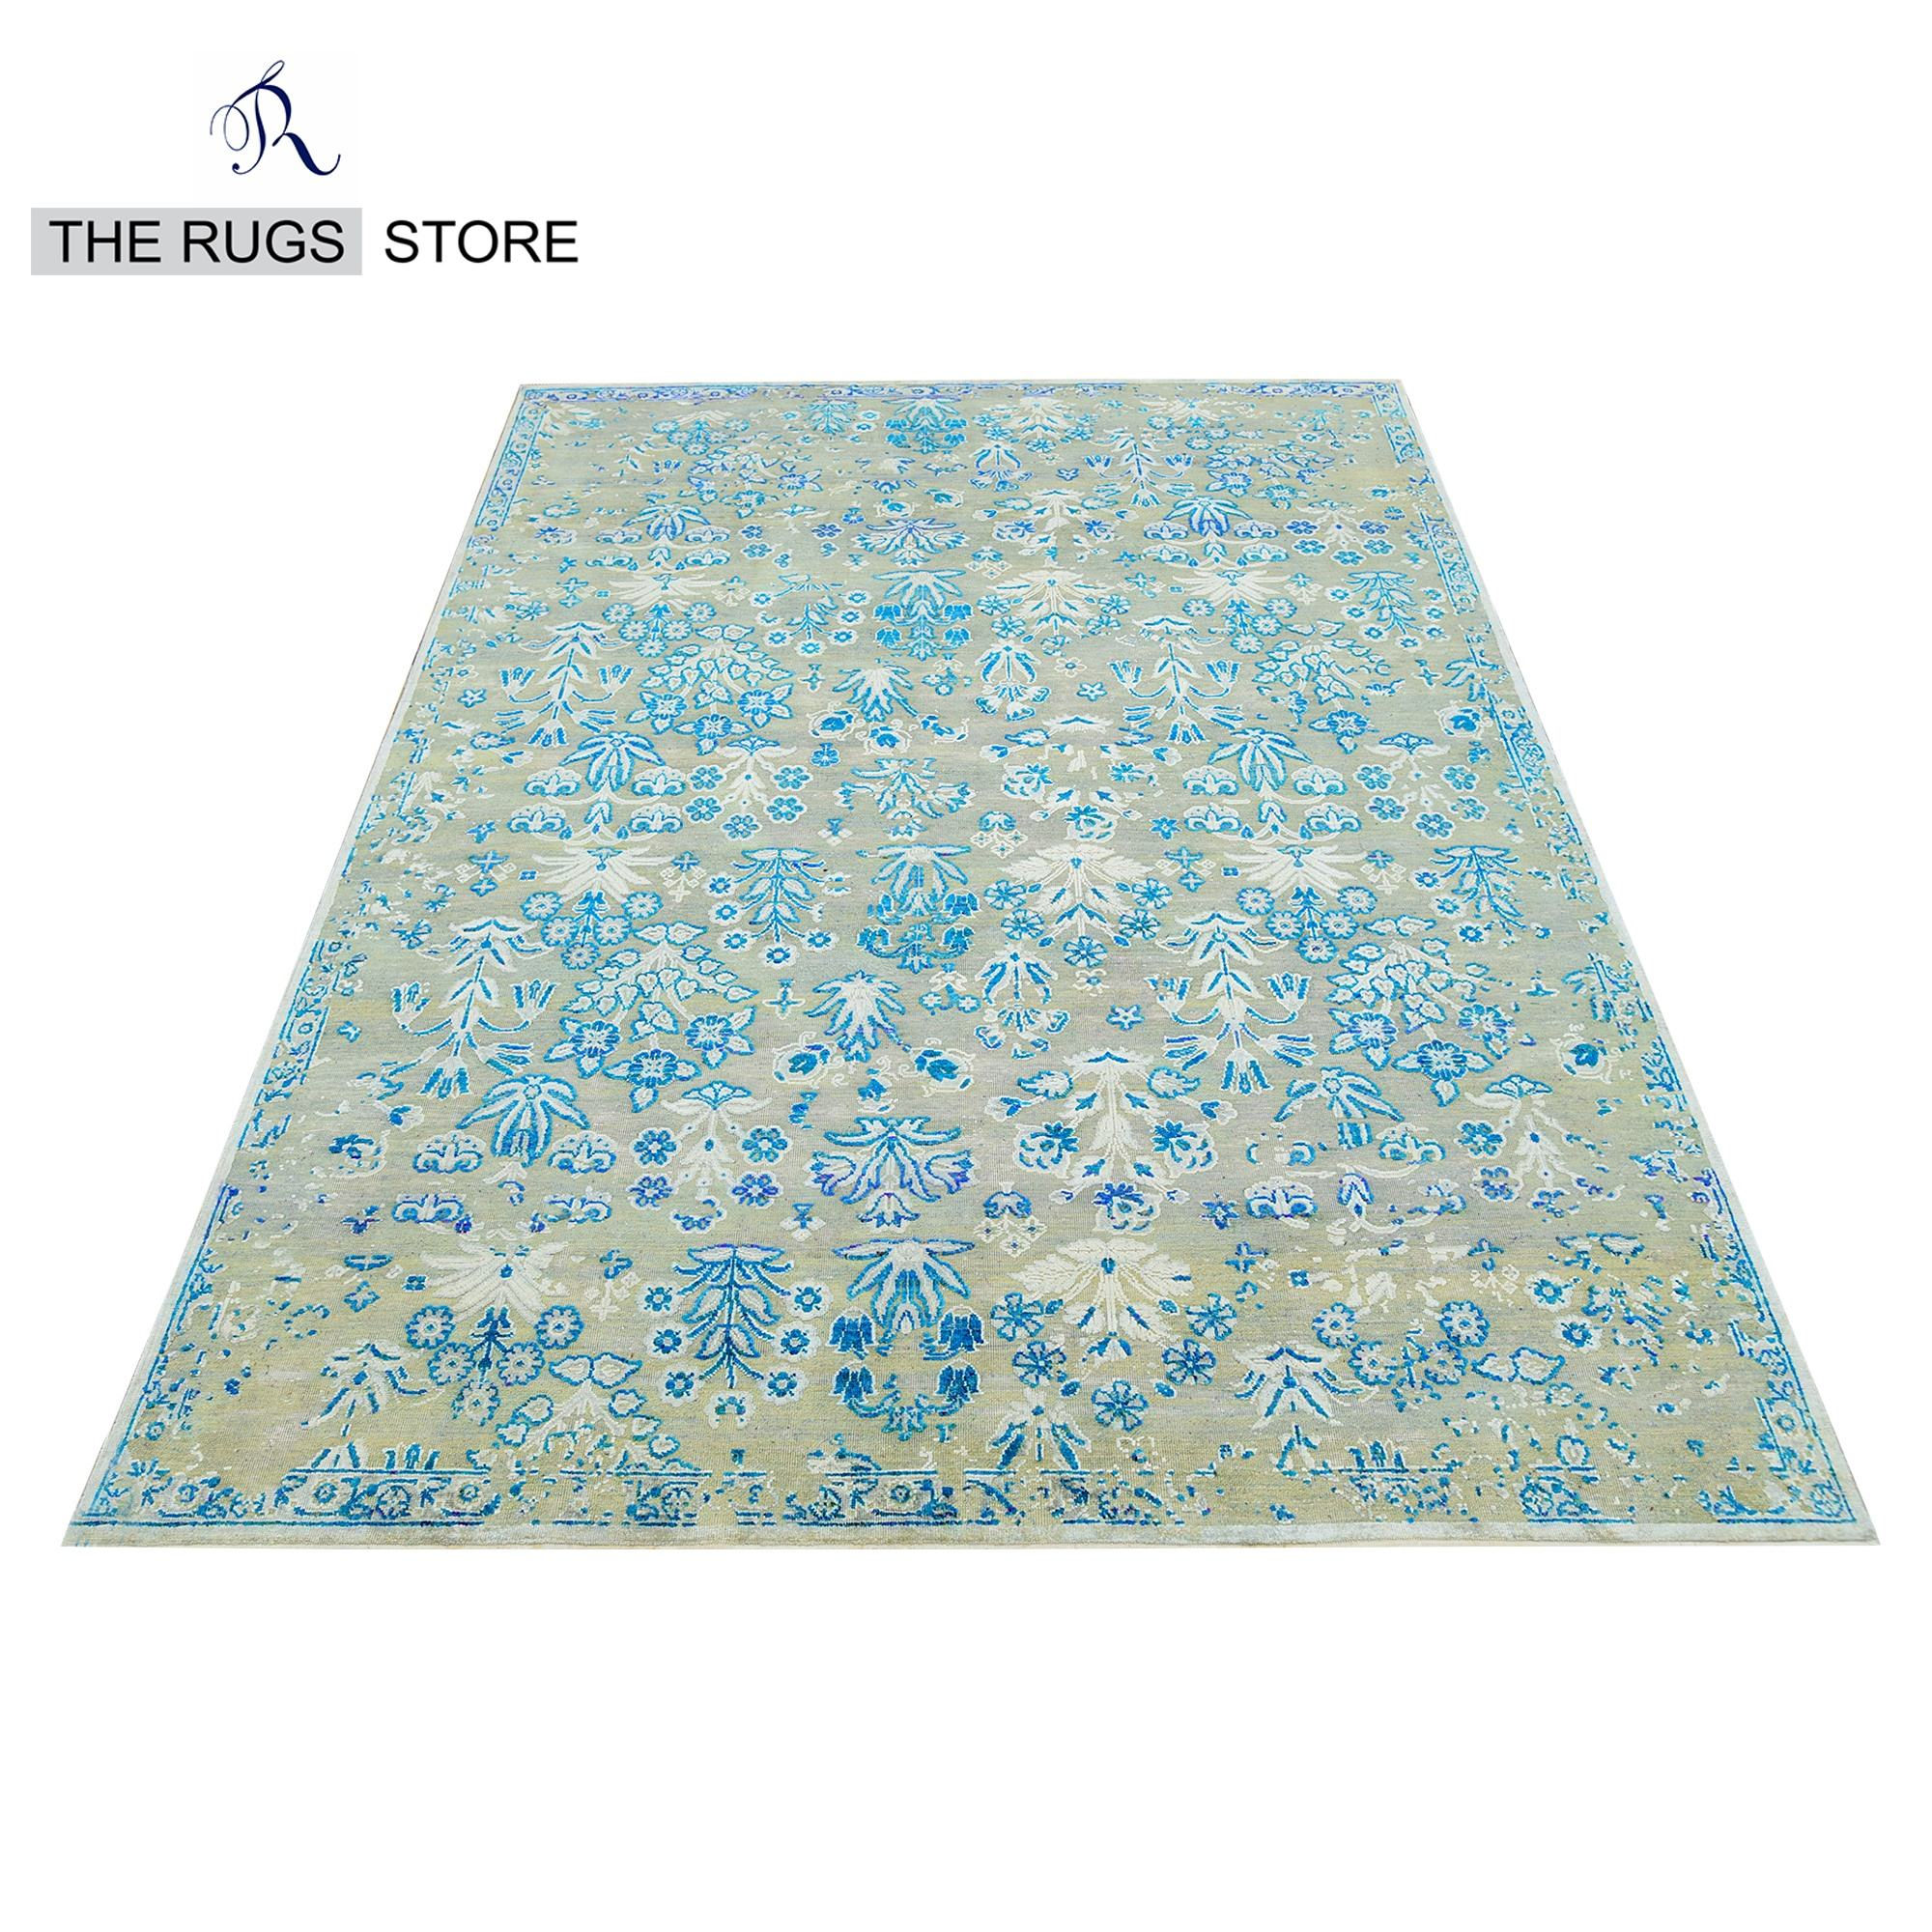 Floral Commercial Carpet White And Blue Area Rug 9x12 feet Handmade Wool Rug